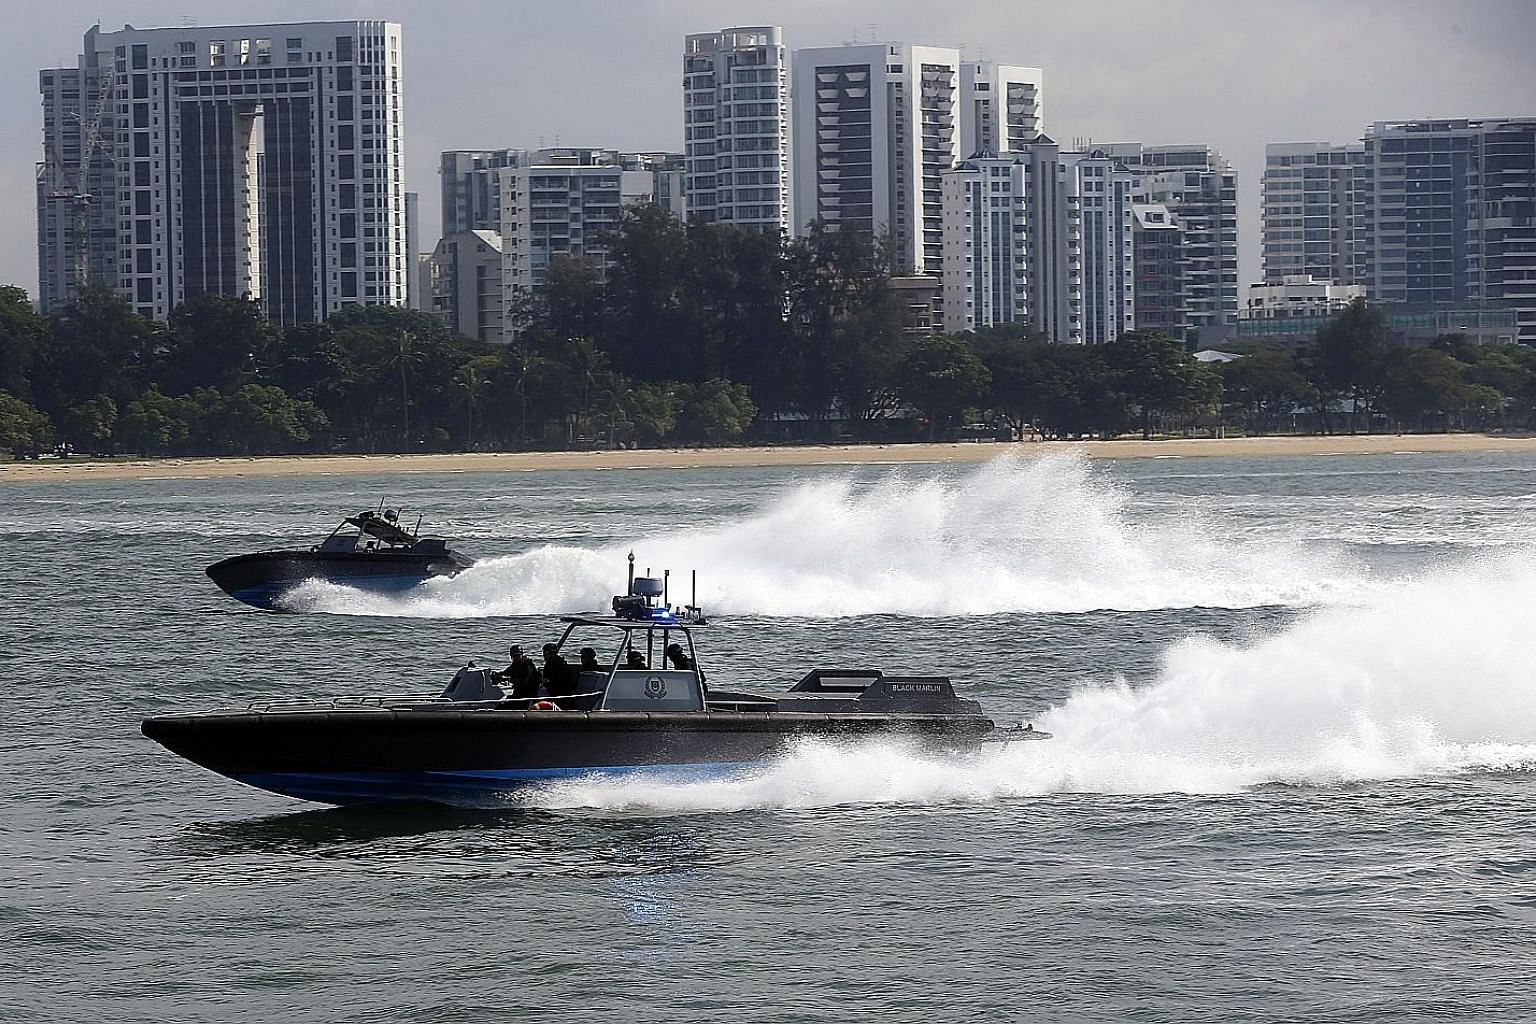 The Police Coast Guard's PK-class high-speed interceptors in action. The 14 cases include actual and attempted incidents. One was an incident of piracy in the high seas and the rest were armed robberies against ships in coastal waters and anchorages.